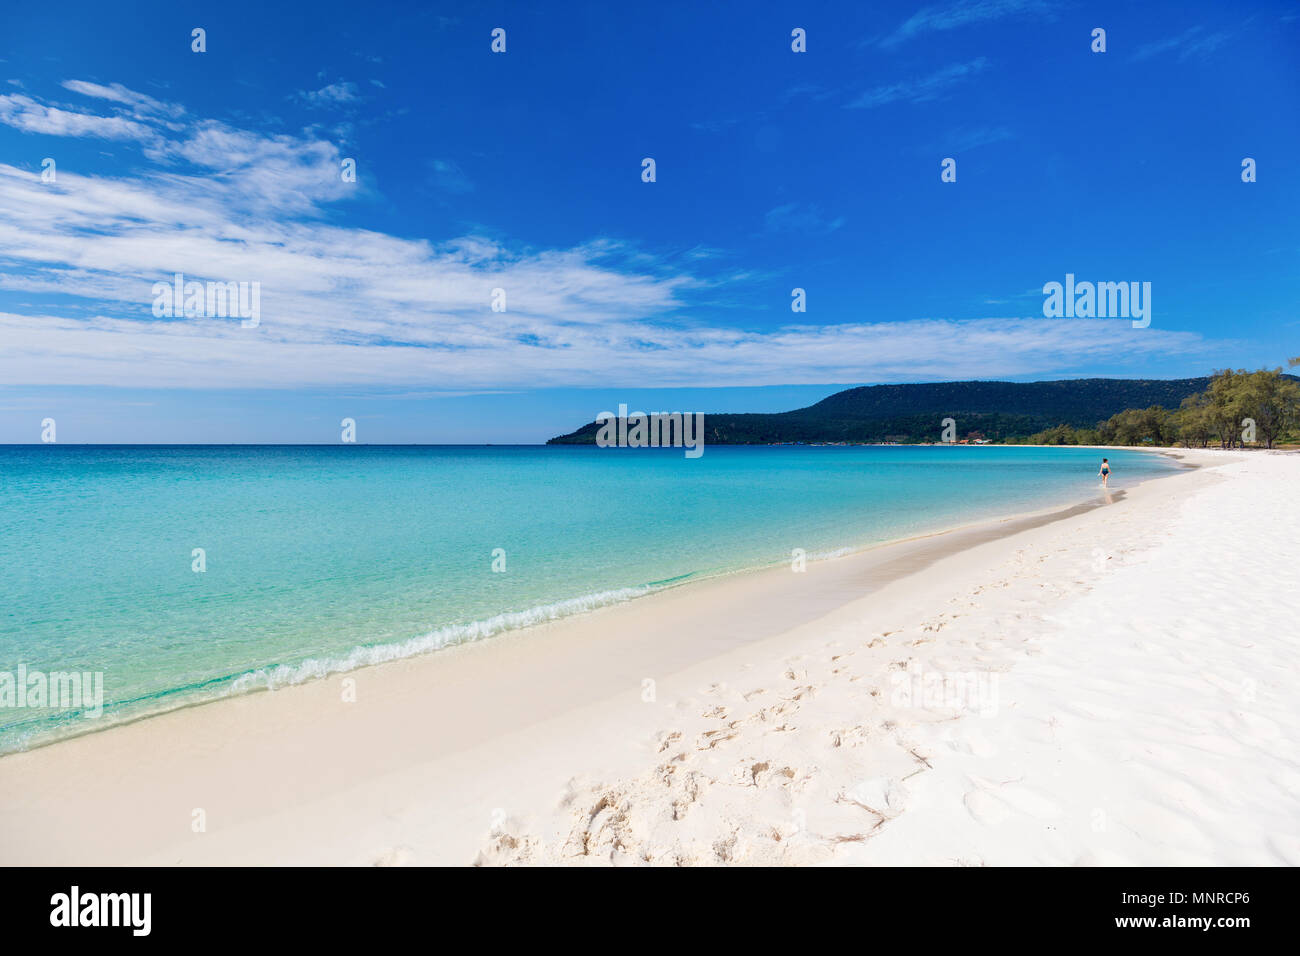 Photo de paysage plage exotique de sable blanc sur l'île de Koh Rong au Cambodge Photo Stock